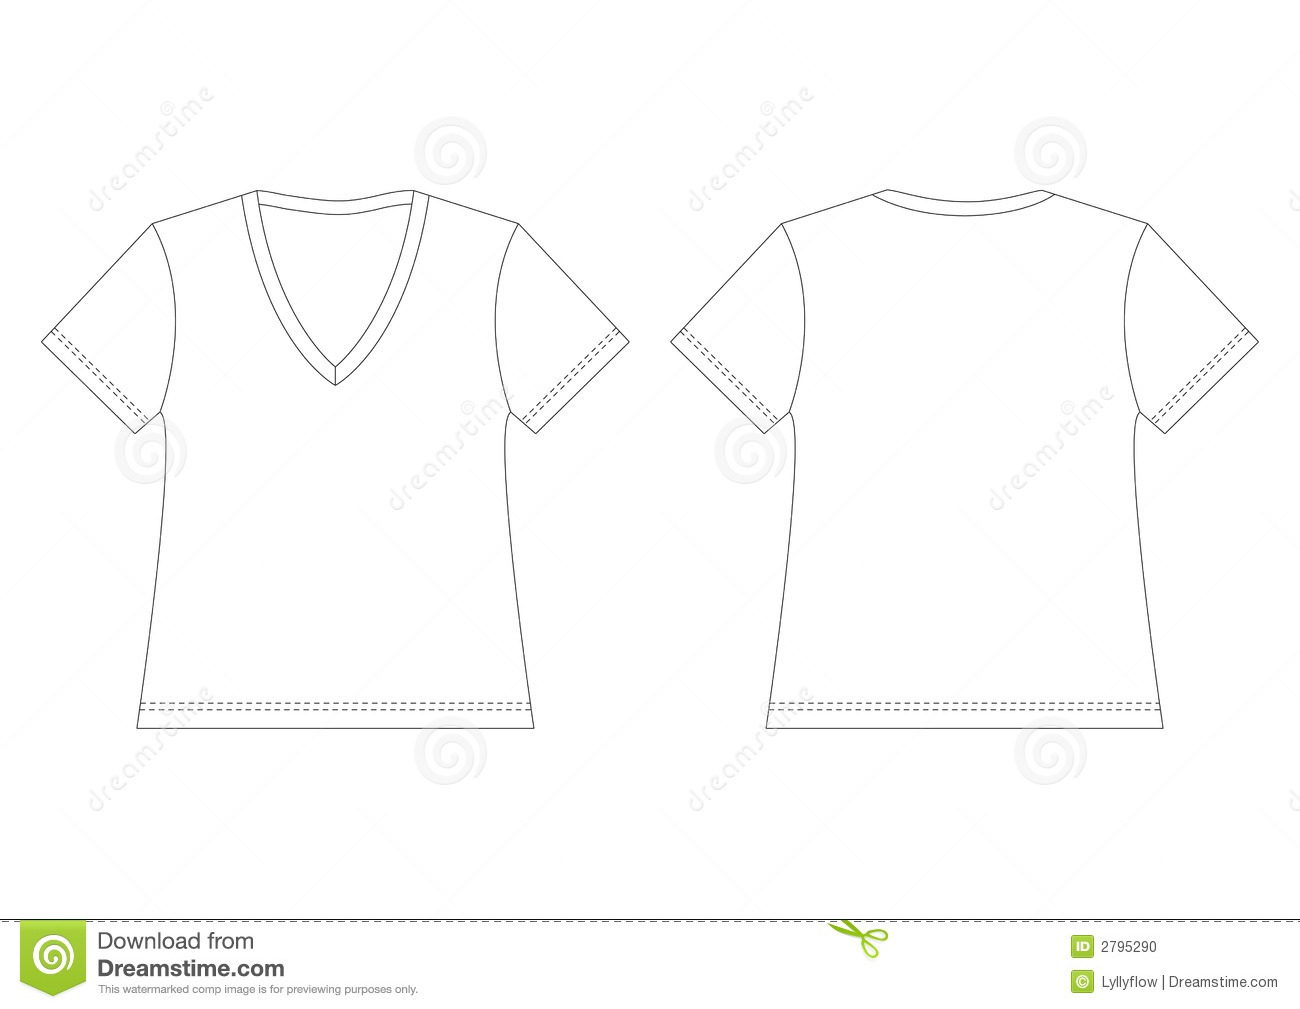 f5a8254f376a White shirt with v-nek ,Outline of plain, for use as template. Designers  Also Selected These Stock Illustrations